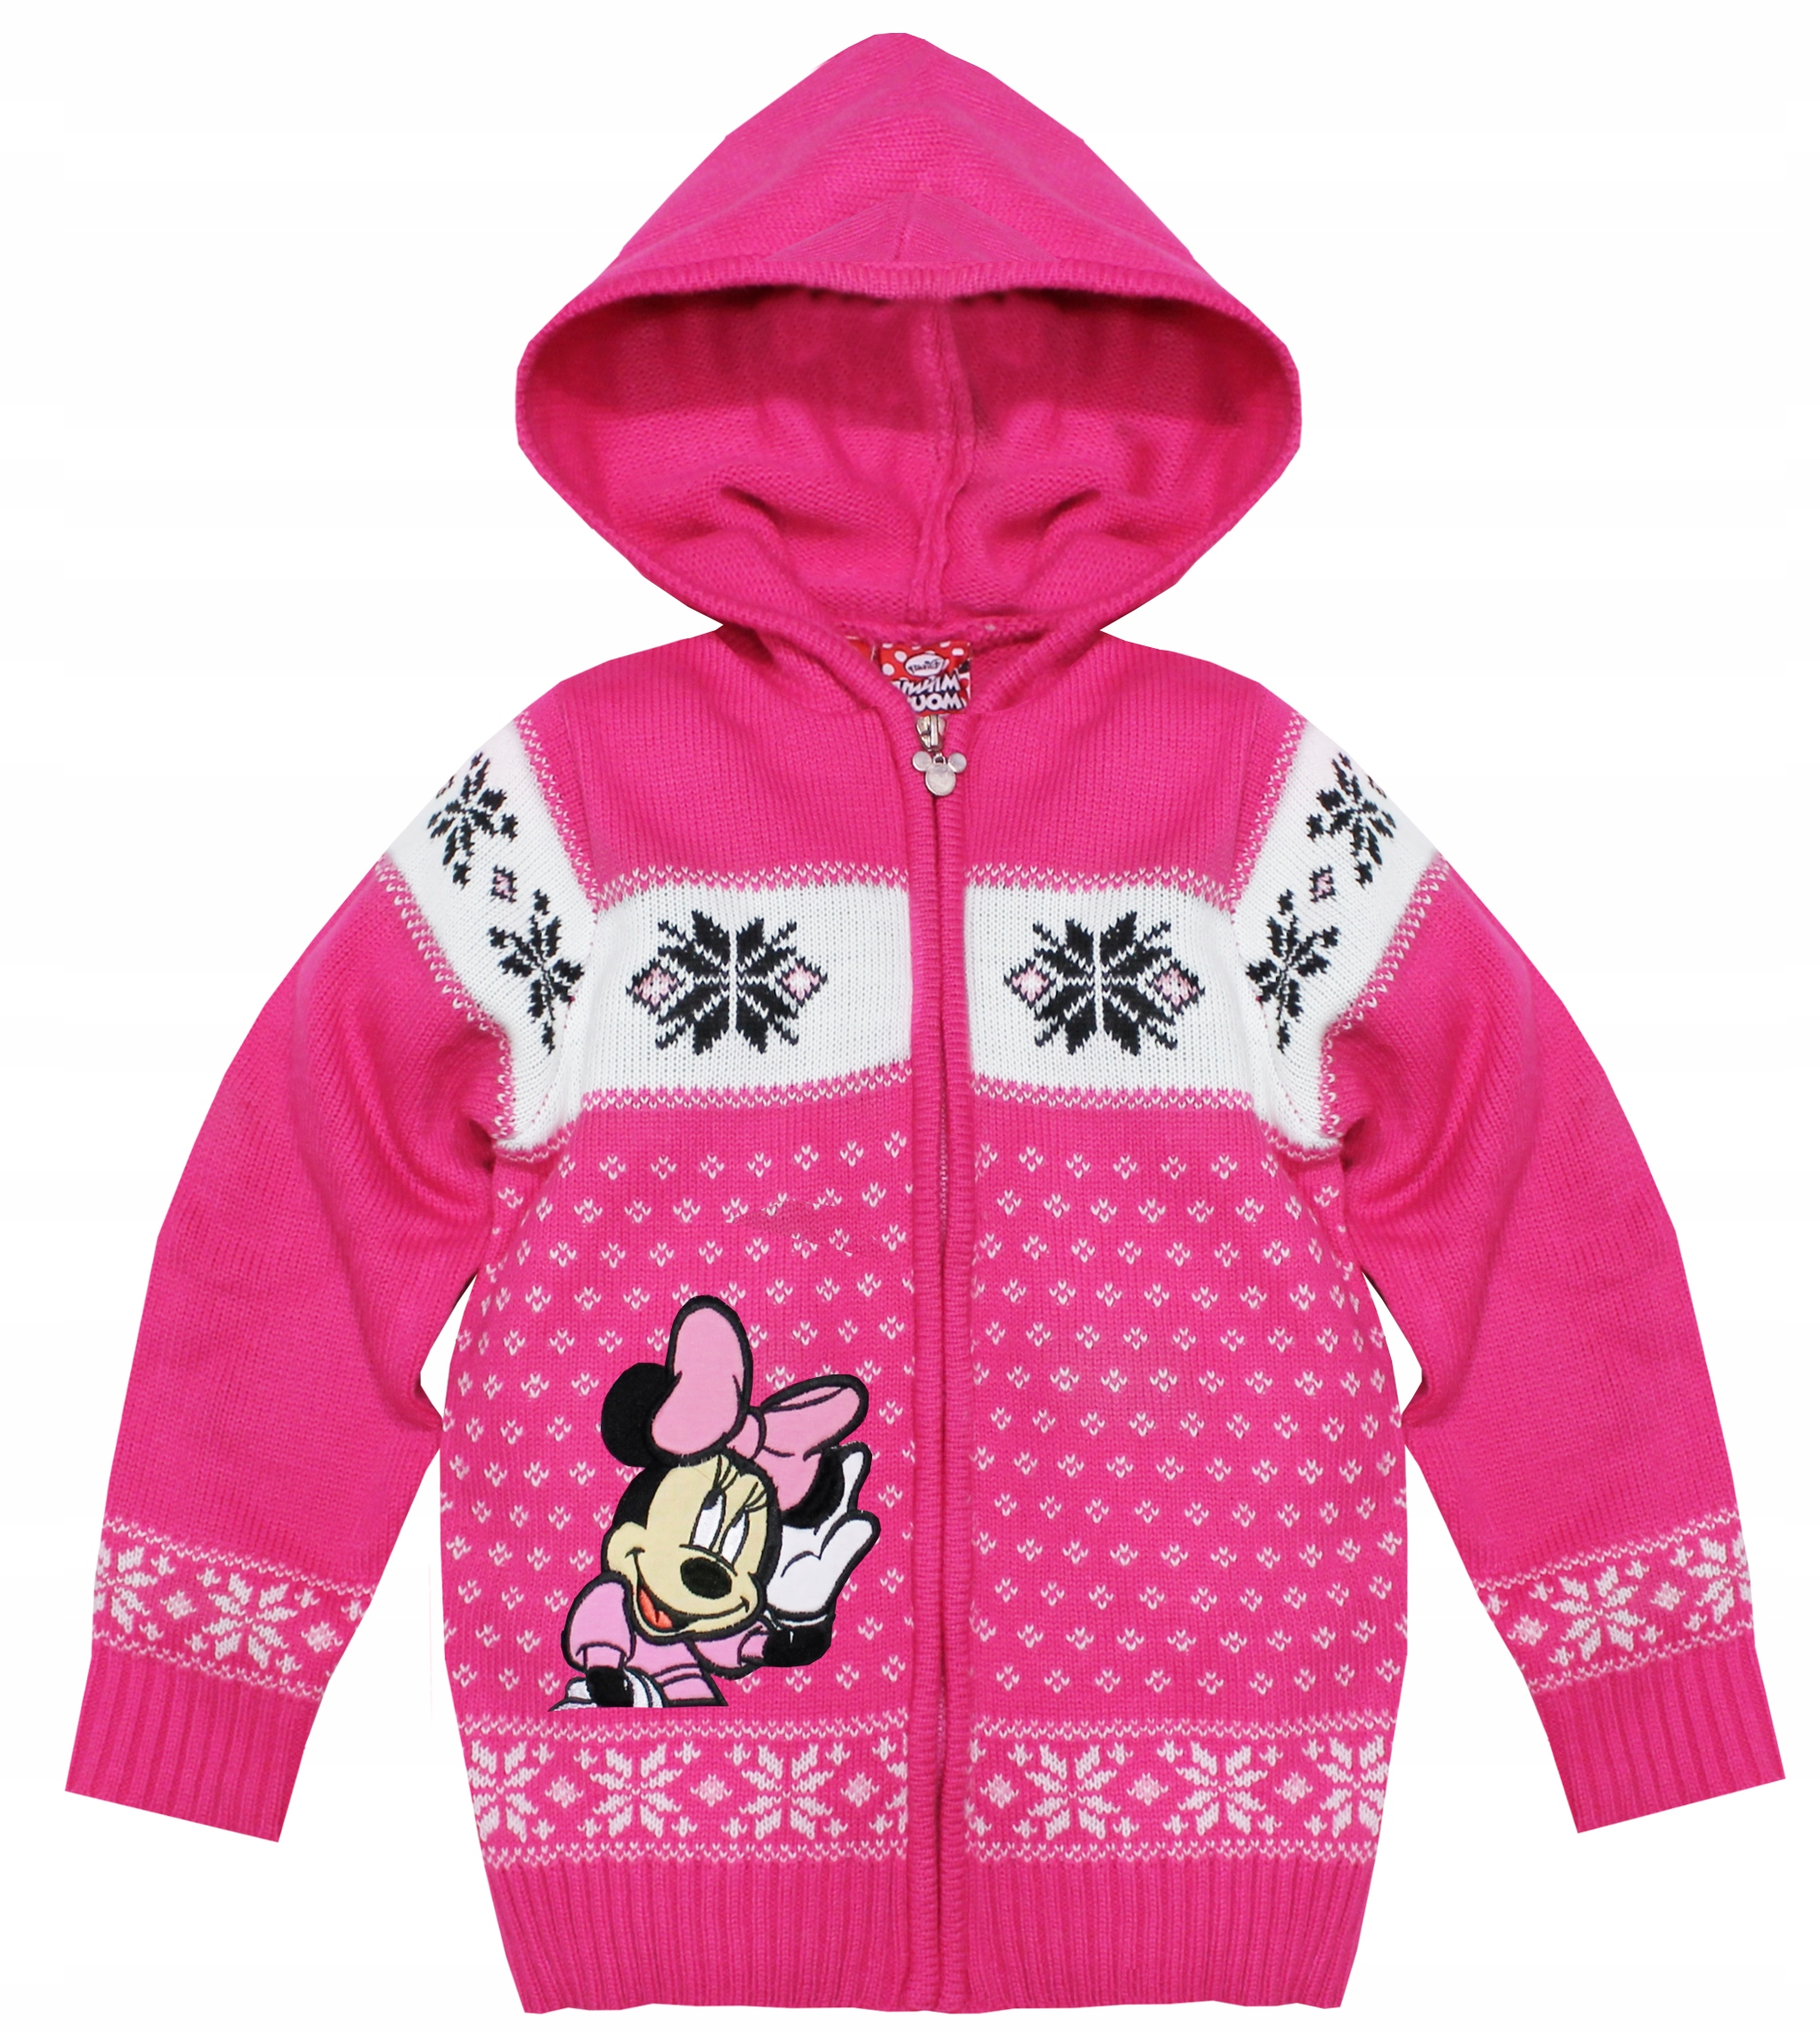 1071*DISNEY*SWETEREK Z KAPTURKIEM Z MINNIE r 122